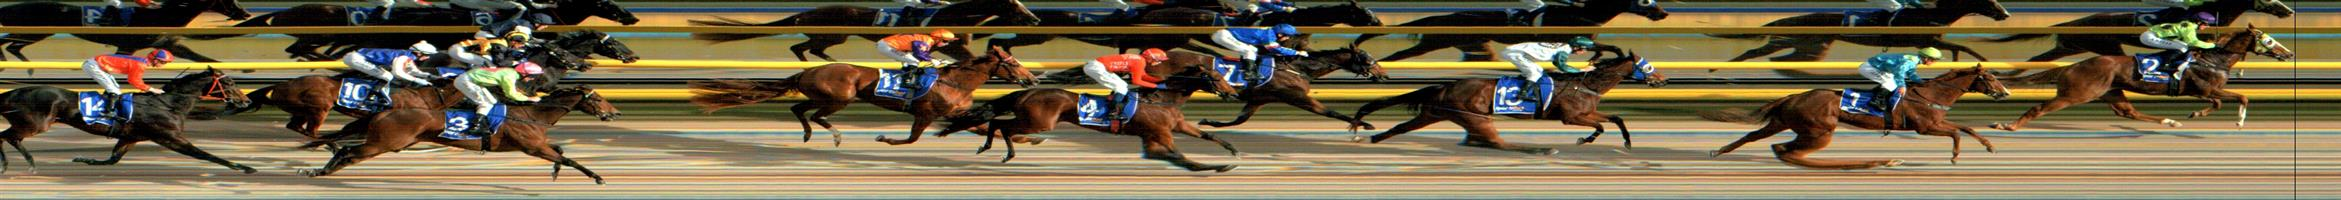 BALLARAT SYNTHET Race 5 No. 7 Trojan Storm @ $6  Result: 4th at SP $6.00. Settled in third, a couple of lenghts from the leader. Had every chance in the straight to chase down the leader but was no match and finished in fourth, four lengths from the winner. Outcome -1.00 Units.